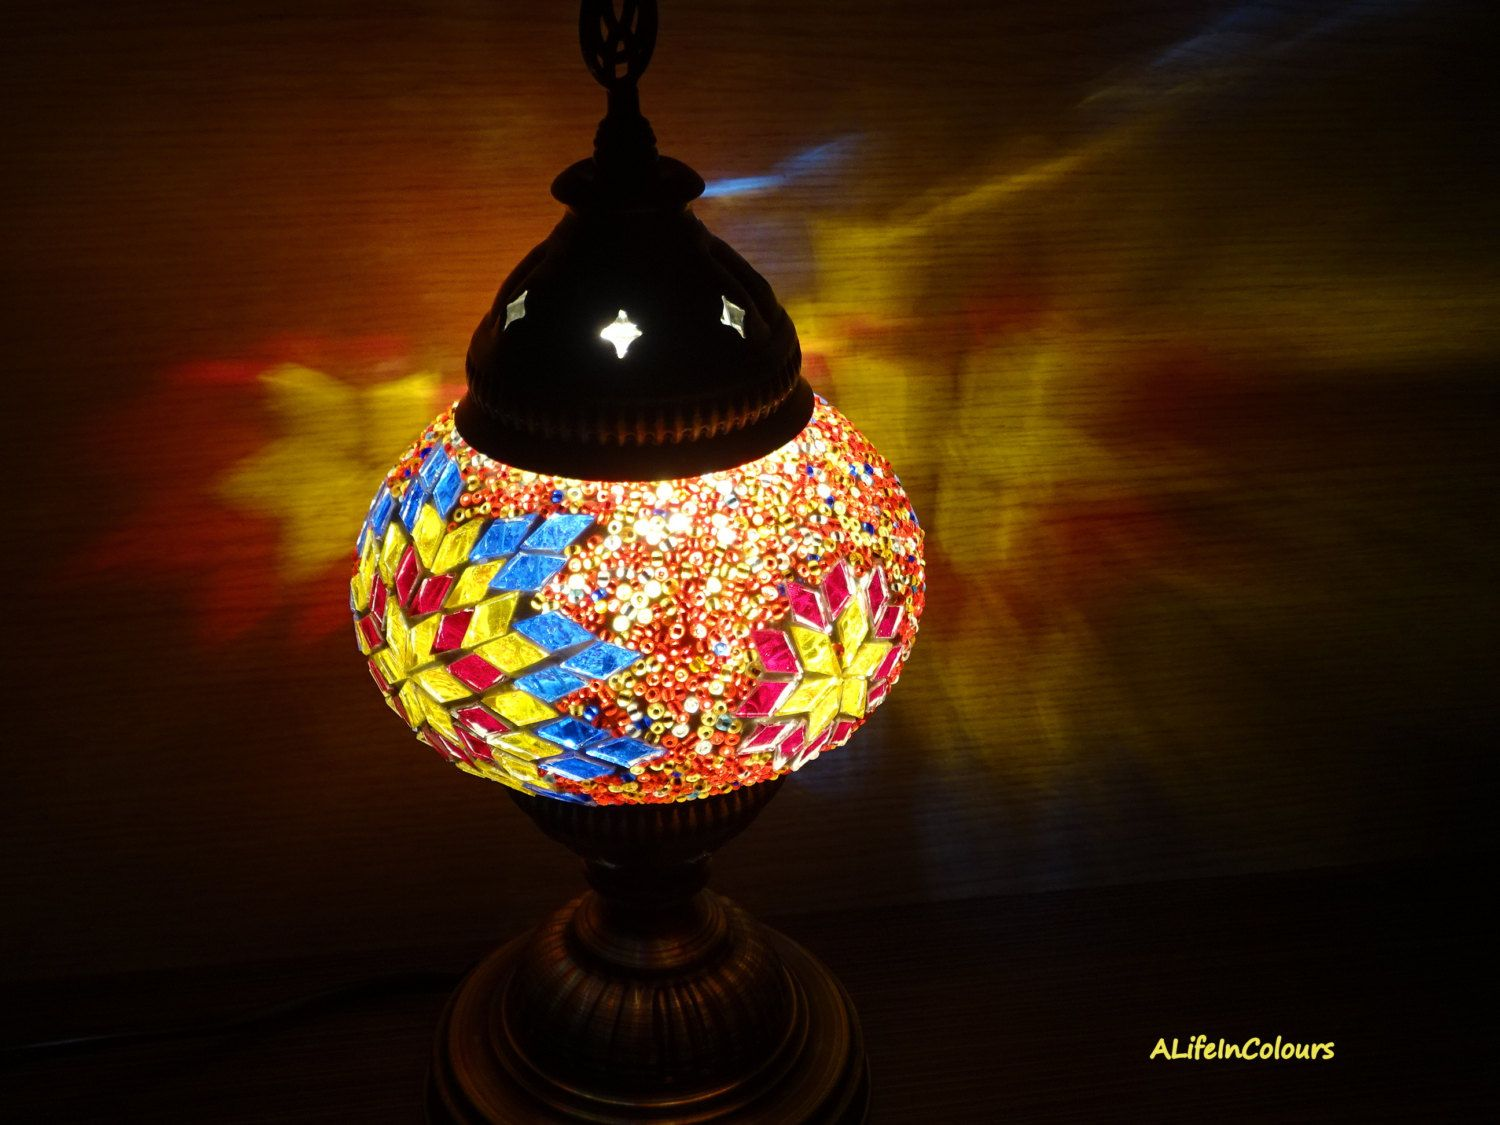 Night lights for bedroom - Authentic Handmade Unique Decorative Turkish Colourful Glass Mosaic Table Lamp Bedside Bedroom Lamp Night Light Kid S Bedroom Lamp